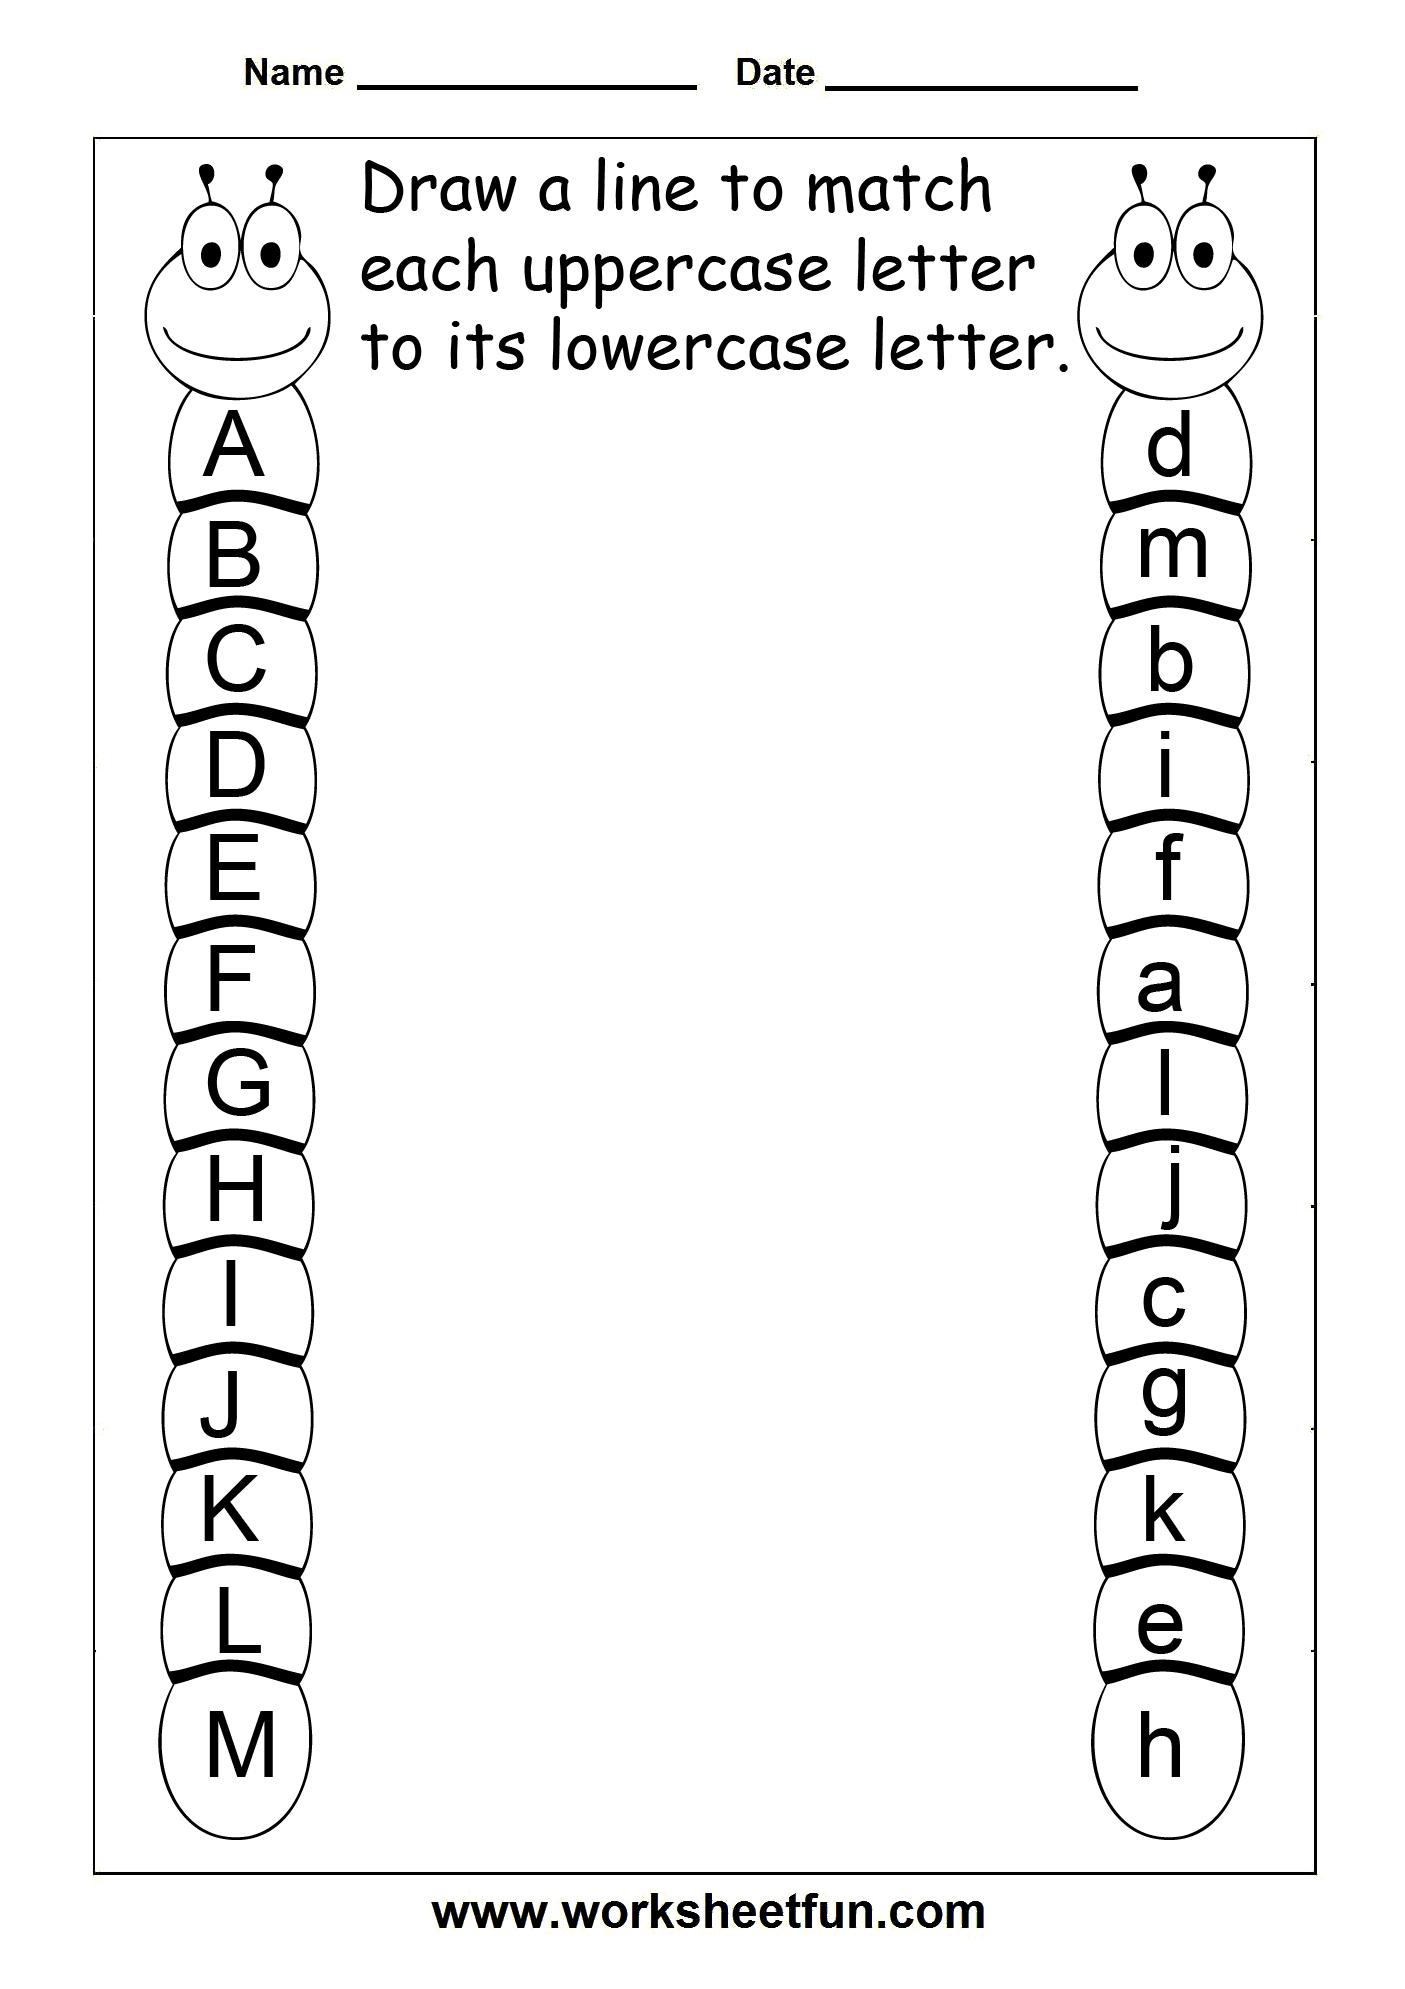 Weirdmailus  Inspiring  Images About Work Worksheet On Pinterest  Hidden Pictures  With Great  Images About Work Worksheet On Pinterest  Hidden Pictures Color By Numbers And Puzzles With Astonishing Abc Order Worksheets Kindergarten Also English Free Printable Worksheets In Addition Shape Symmetry Worksheet And Pyramids And Prisms Worksheet As Well As Worksheet Number  Additionally Senses Worksheets For Kindergarten From Pinterestcom With Weirdmailus  Great  Images About Work Worksheet On Pinterest  Hidden Pictures  With Astonishing  Images About Work Worksheet On Pinterest  Hidden Pictures Color By Numbers And Puzzles And Inspiring Abc Order Worksheets Kindergarten Also English Free Printable Worksheets In Addition Shape Symmetry Worksheet From Pinterestcom